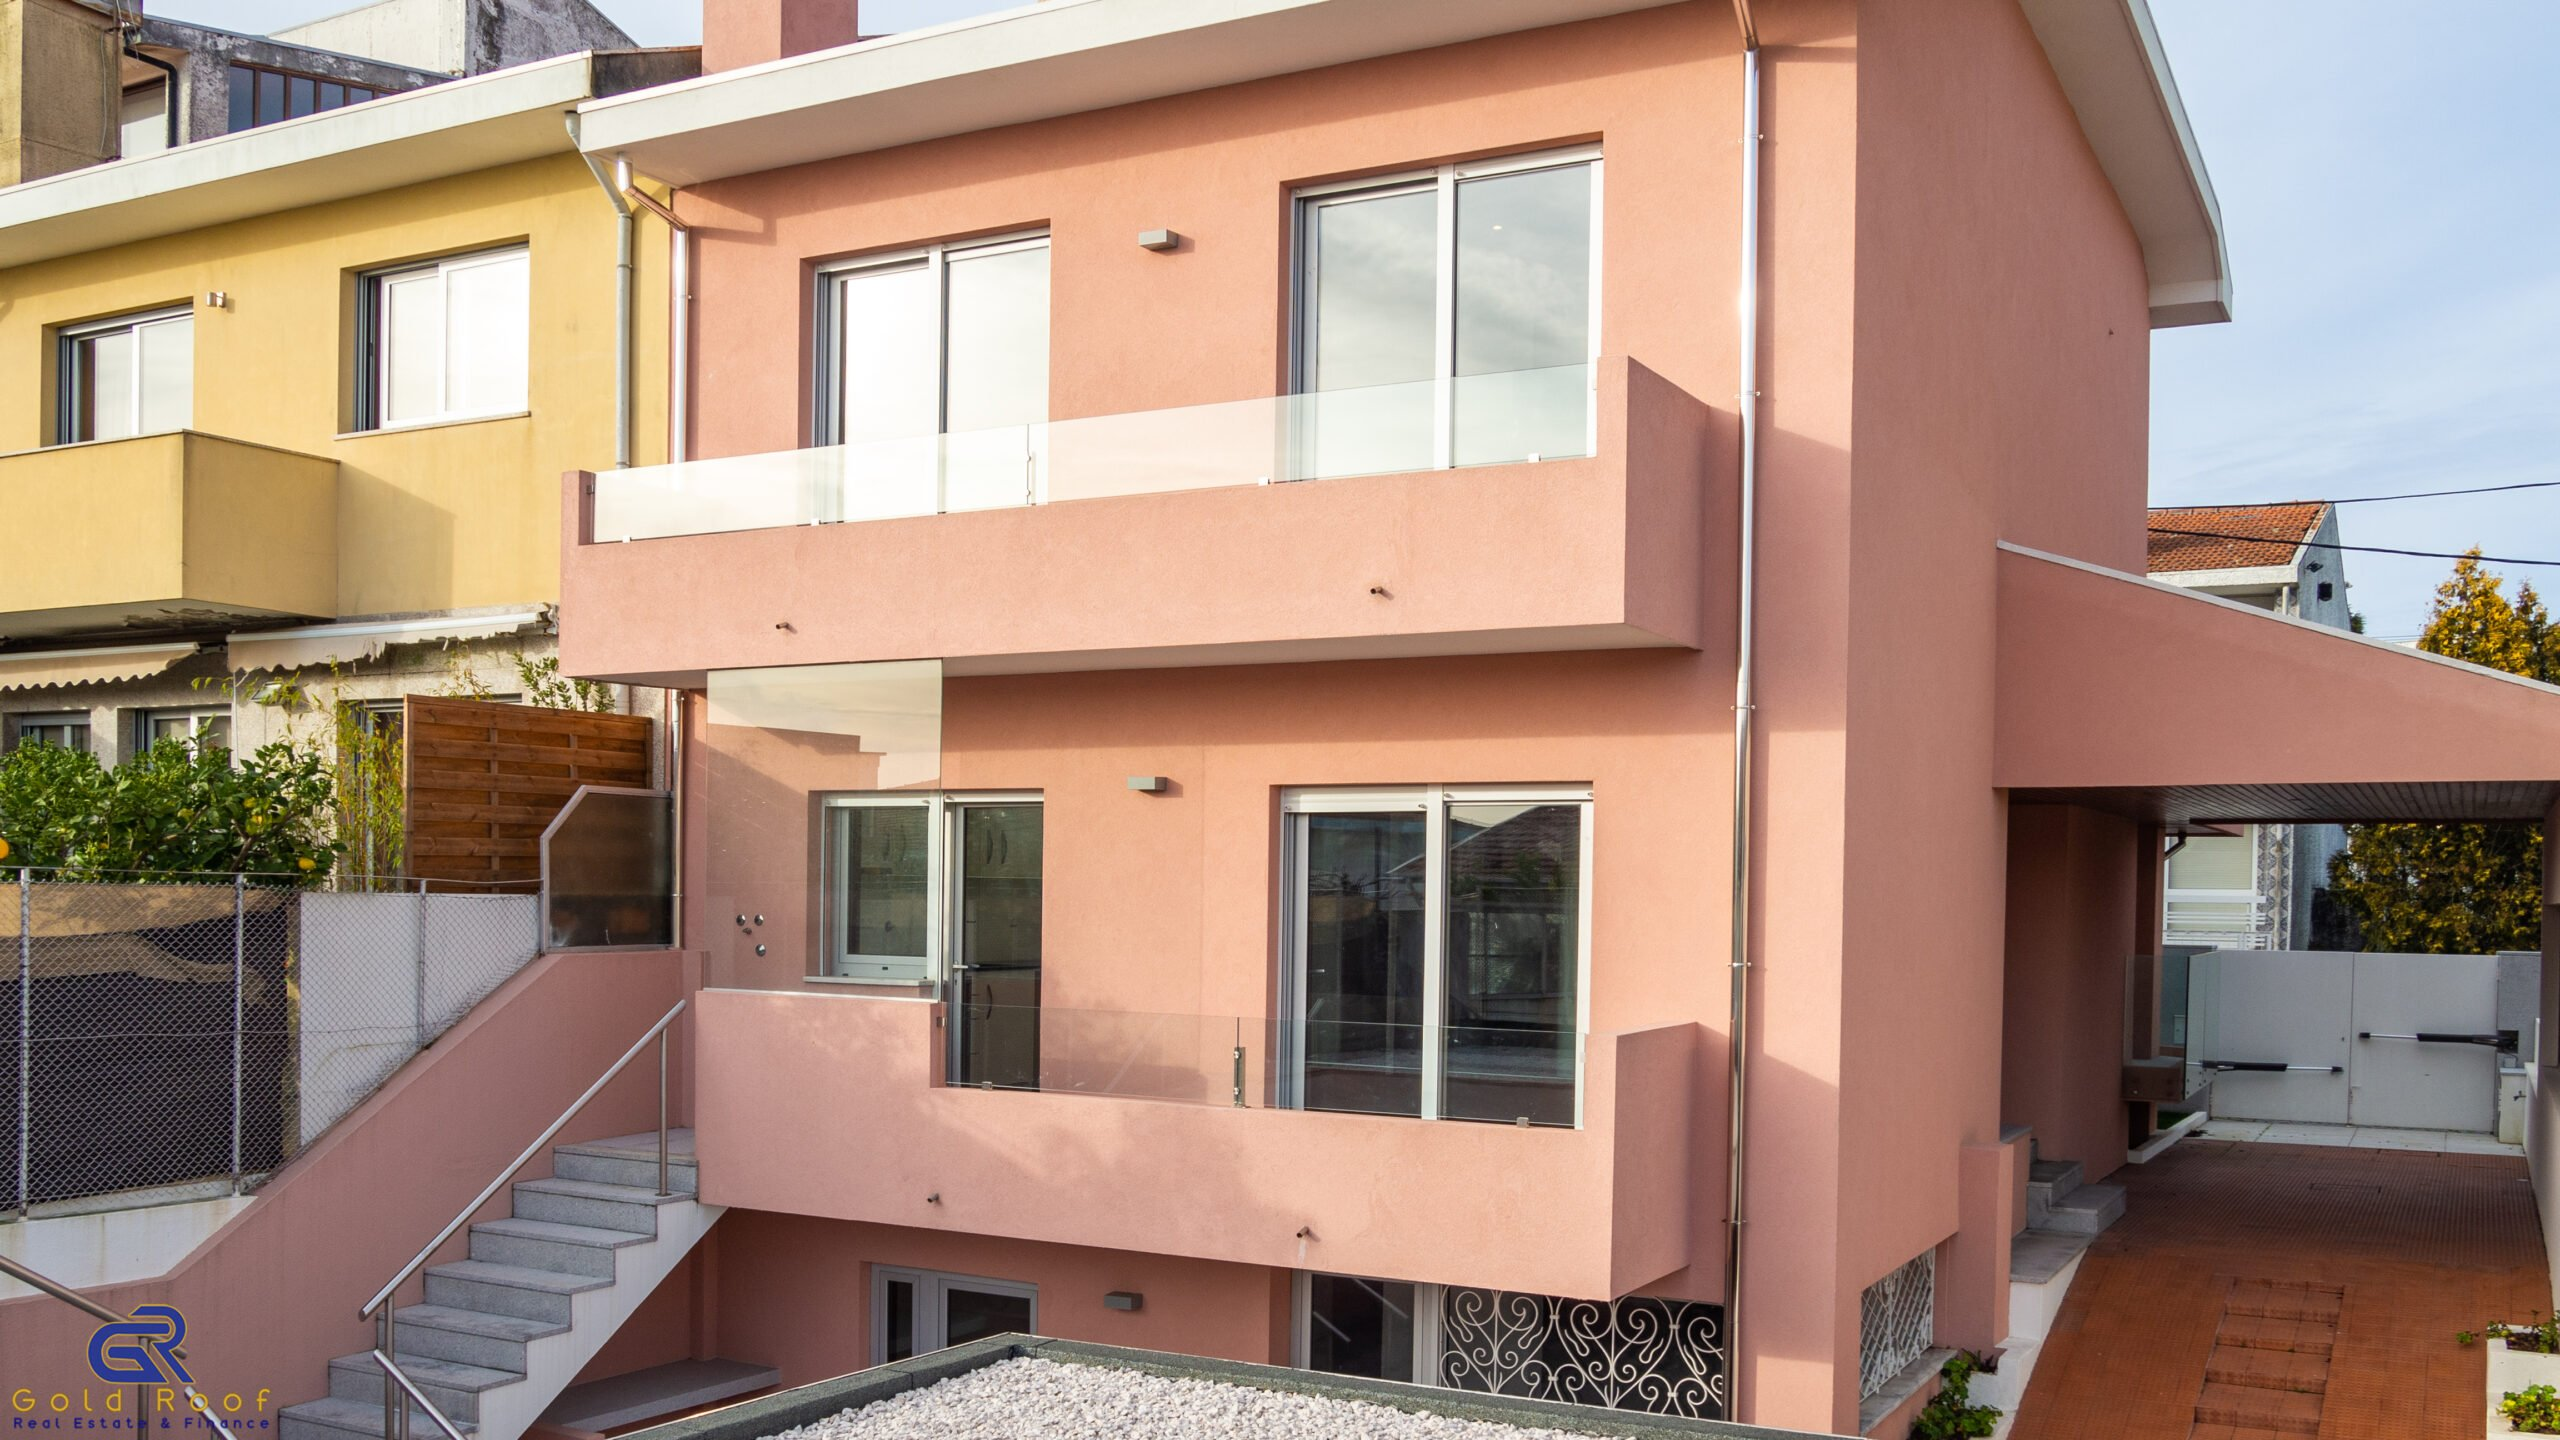 4-bedroom villa with terrace, 3 fronts, Pedroso, Carvalhos